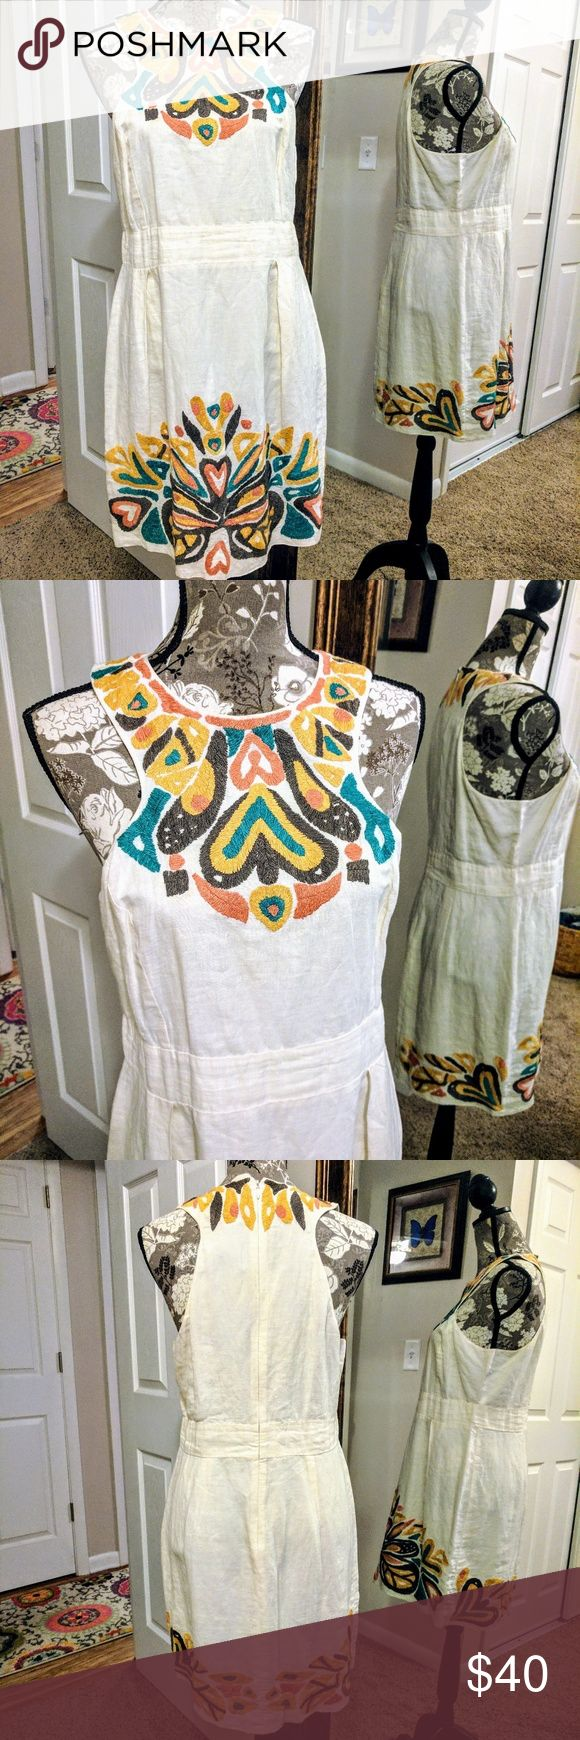 French Connection Embroidered Linen Dress Cream linen dress with colorful embroidery. UK size 10 which is about an 8 US French Connection Dresses